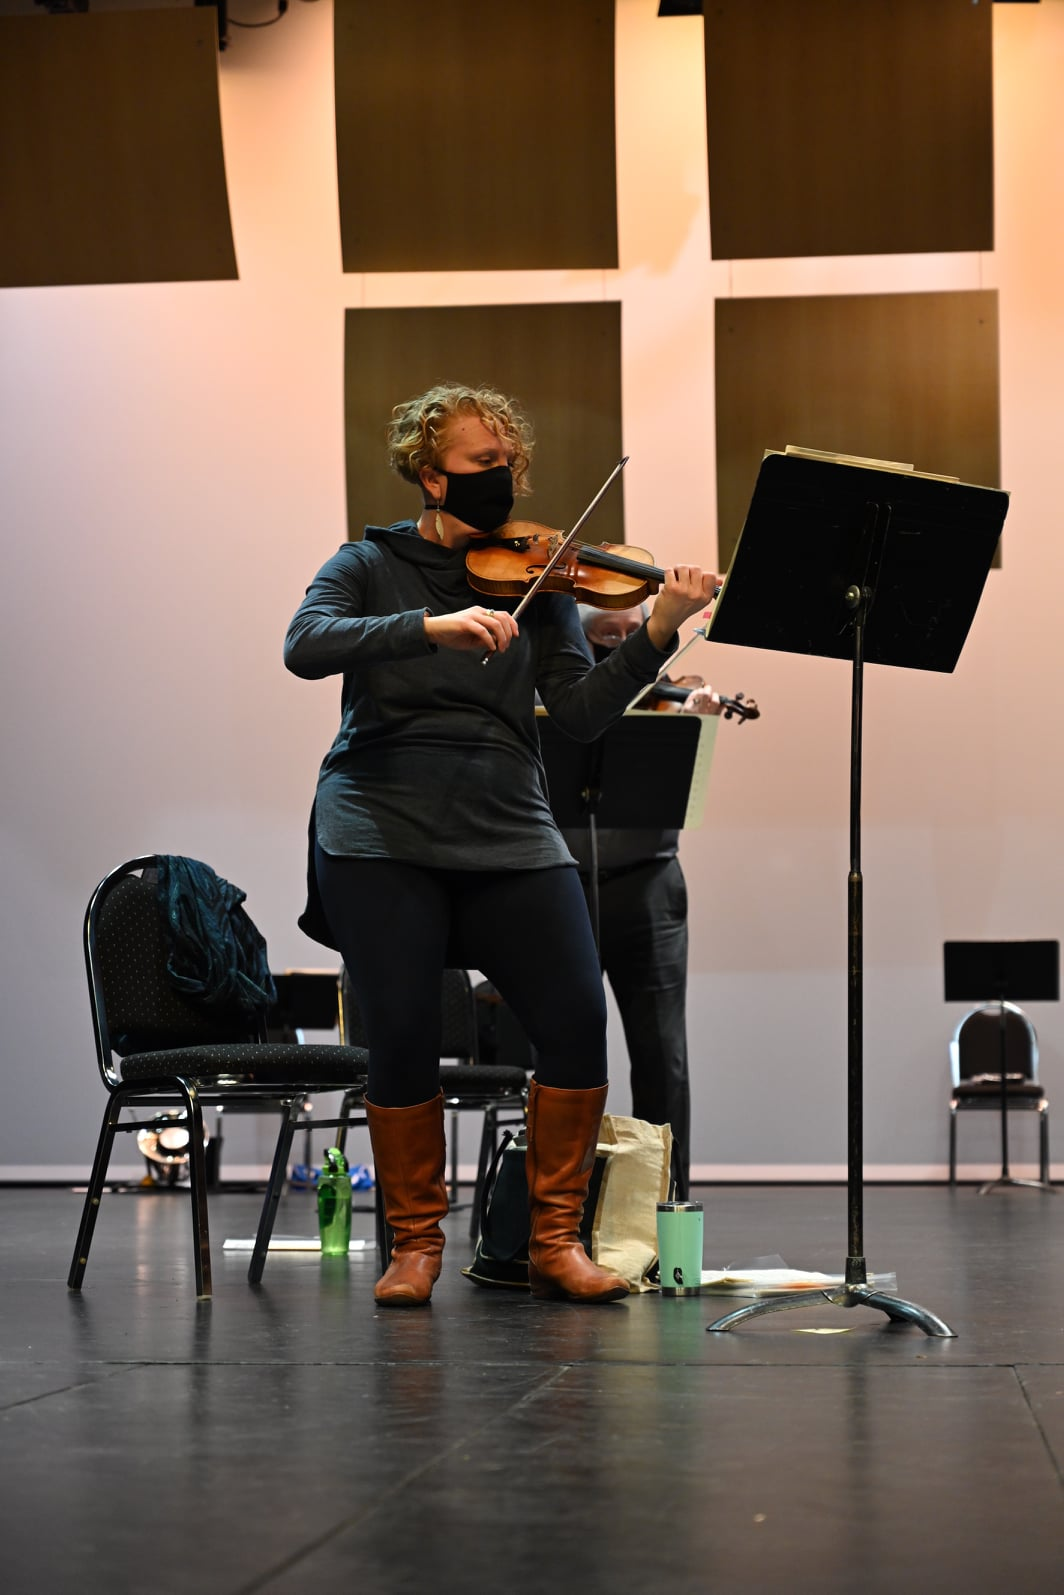 Martine is playing the violin, while standing and wearing a mask